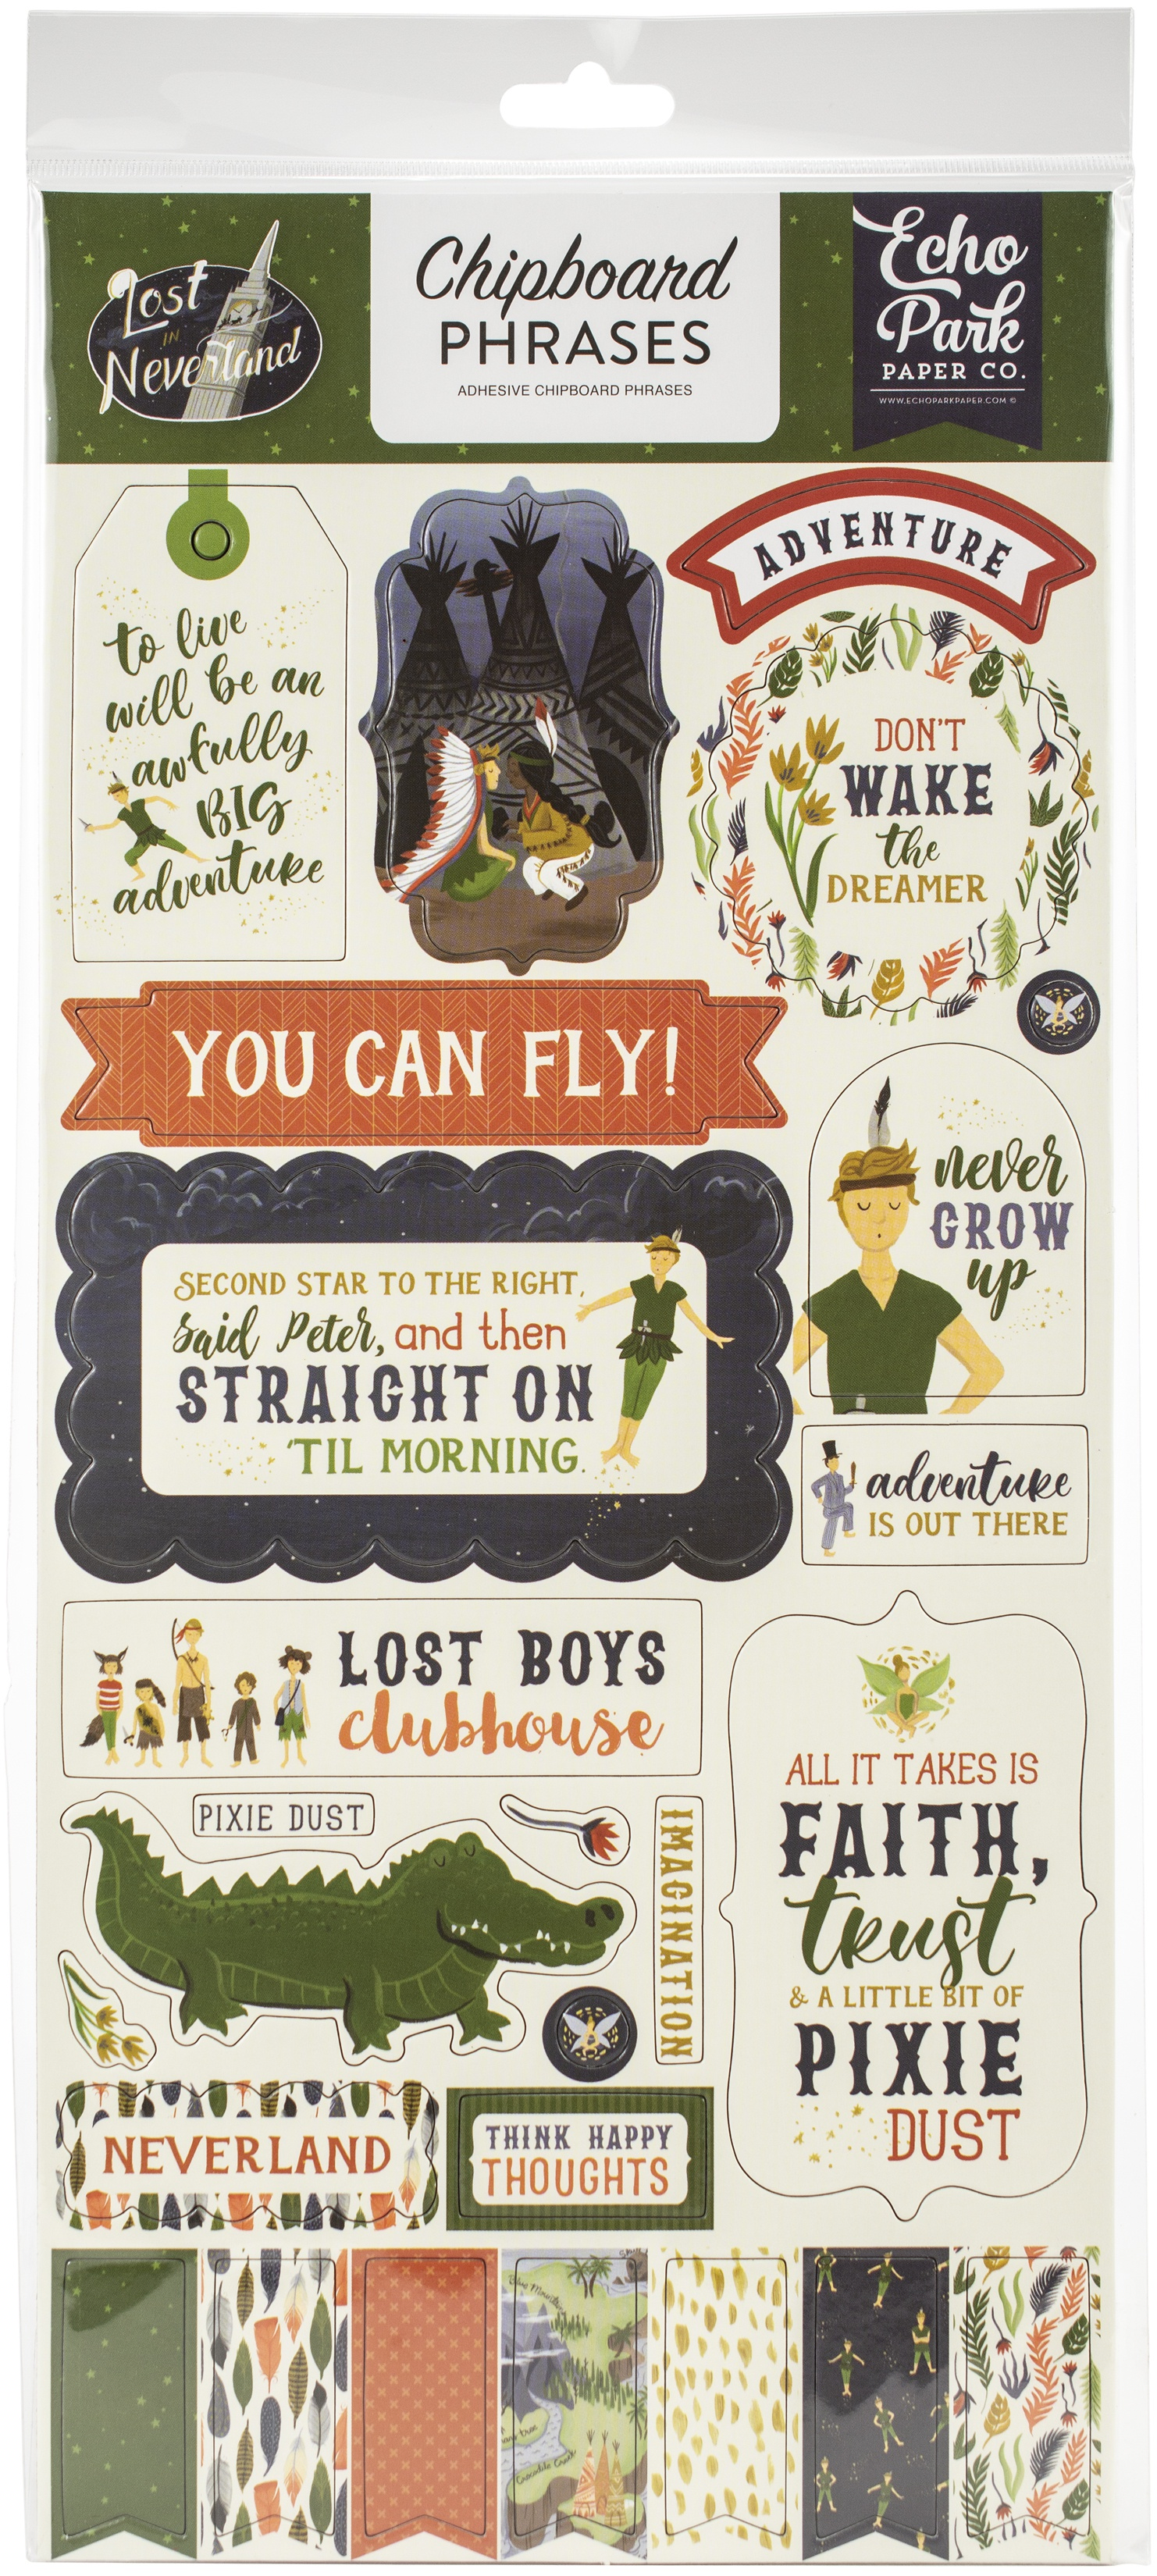 EP Neverland Chipboard Phrases